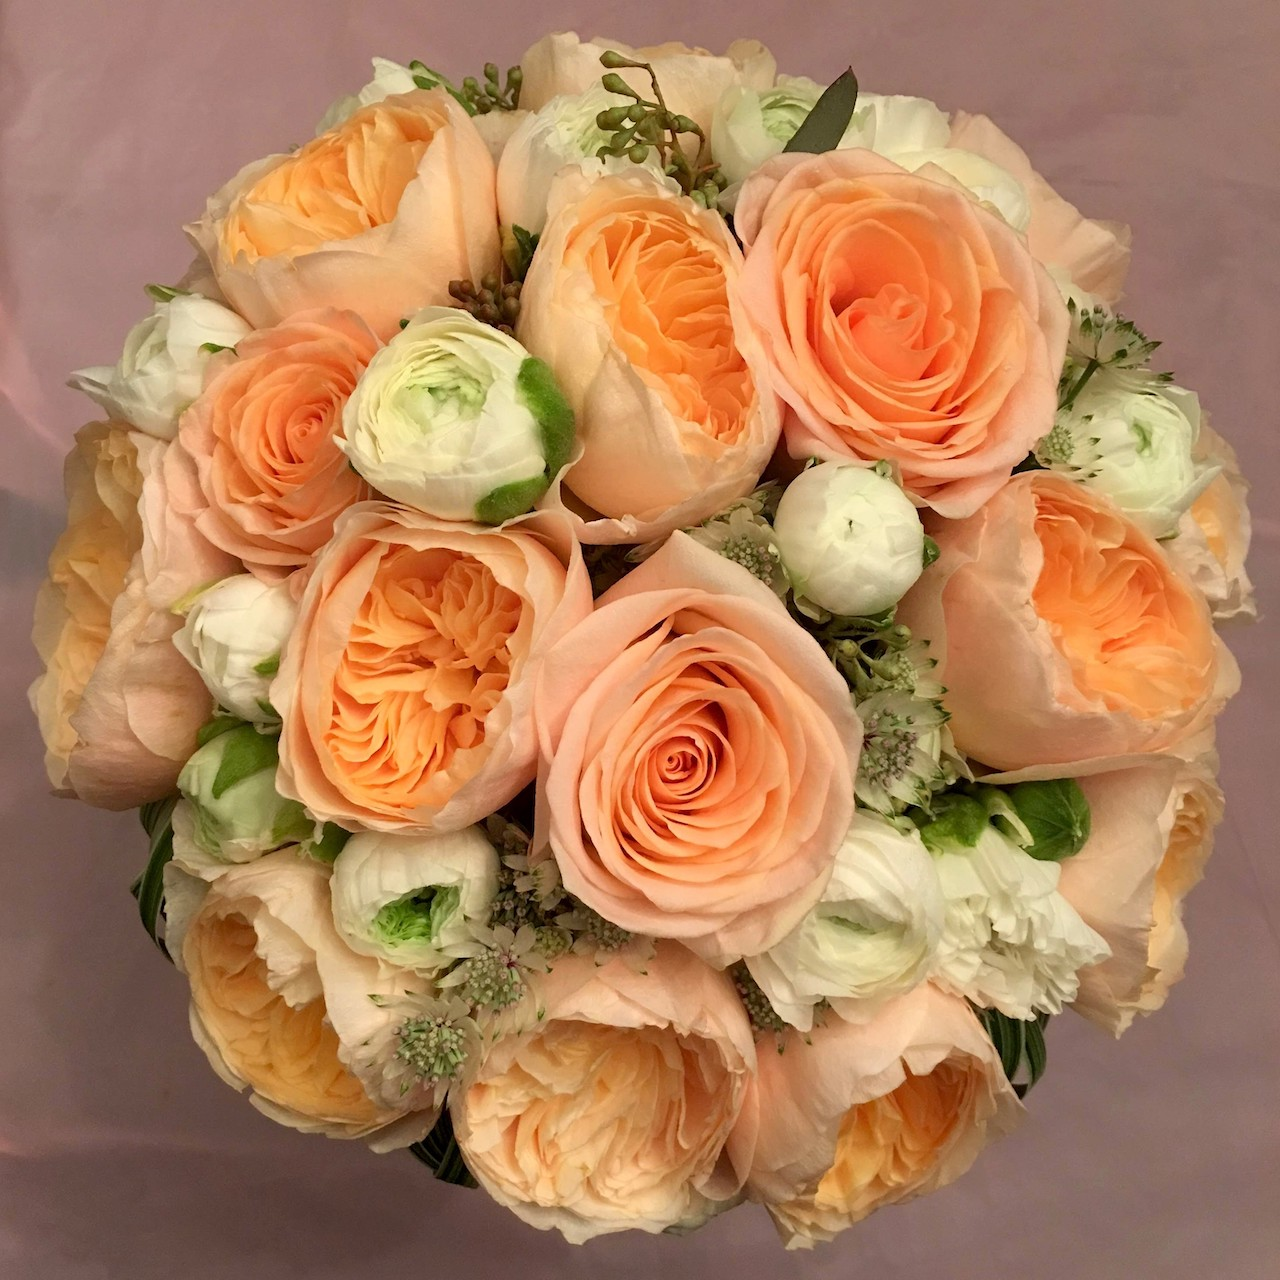 - Peonies and garden roses are like a match made in heaven. They add so much texture to a bouquet, and this wedding bouquet perfectly captures the different stages of these flowers. And who doesn't love peach colored flowers?